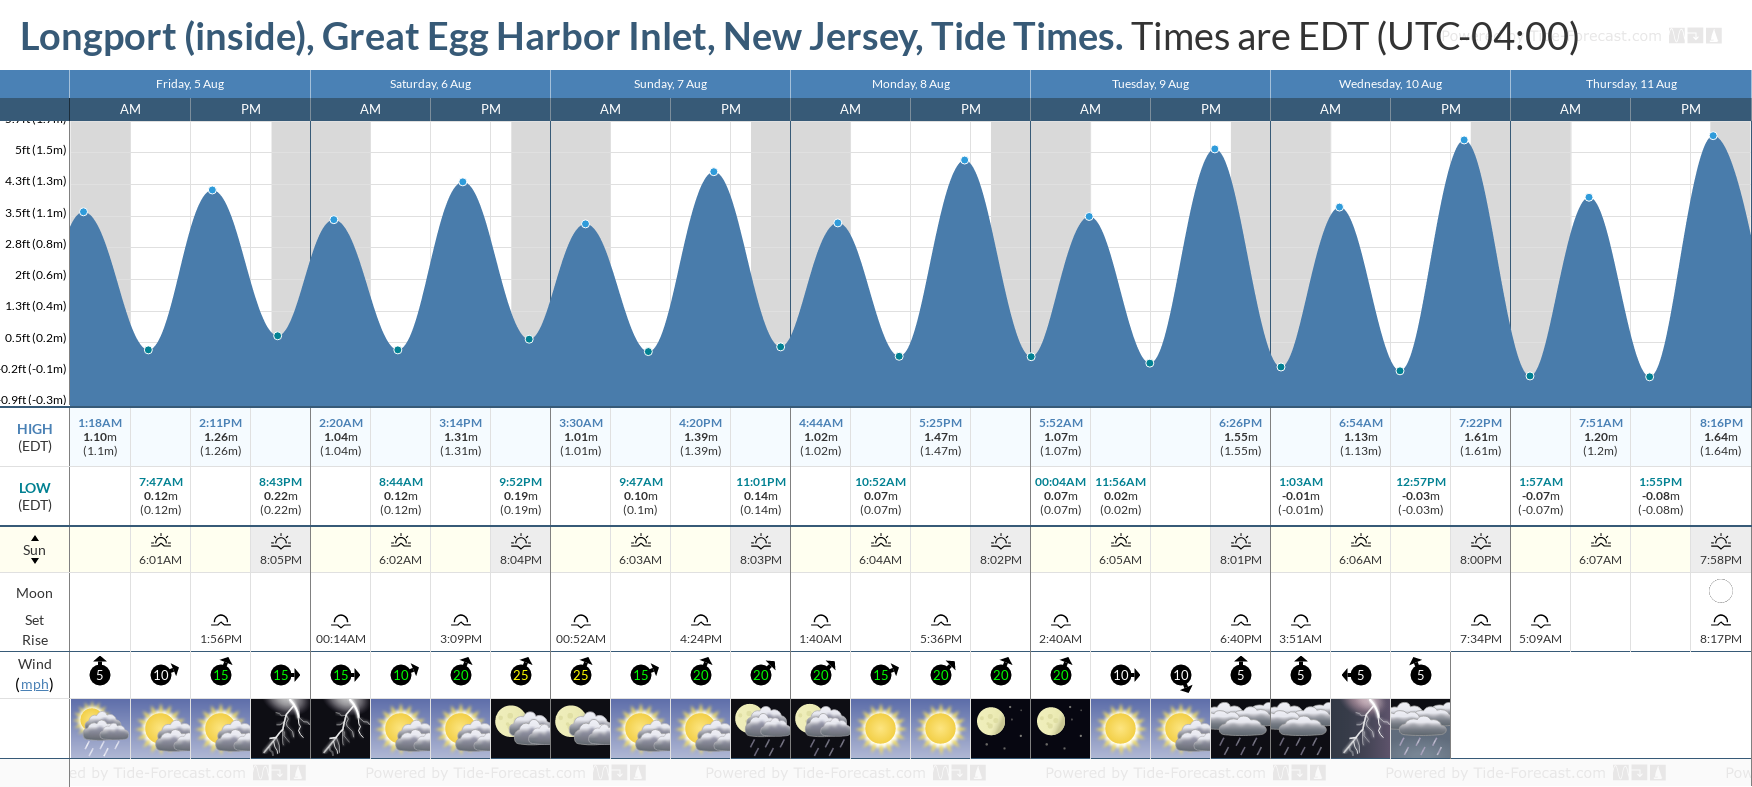 Longport (inside), Great Egg Harbor Inlet, New Jersey Tide Chart including high and low tide tide times for the next 7 days